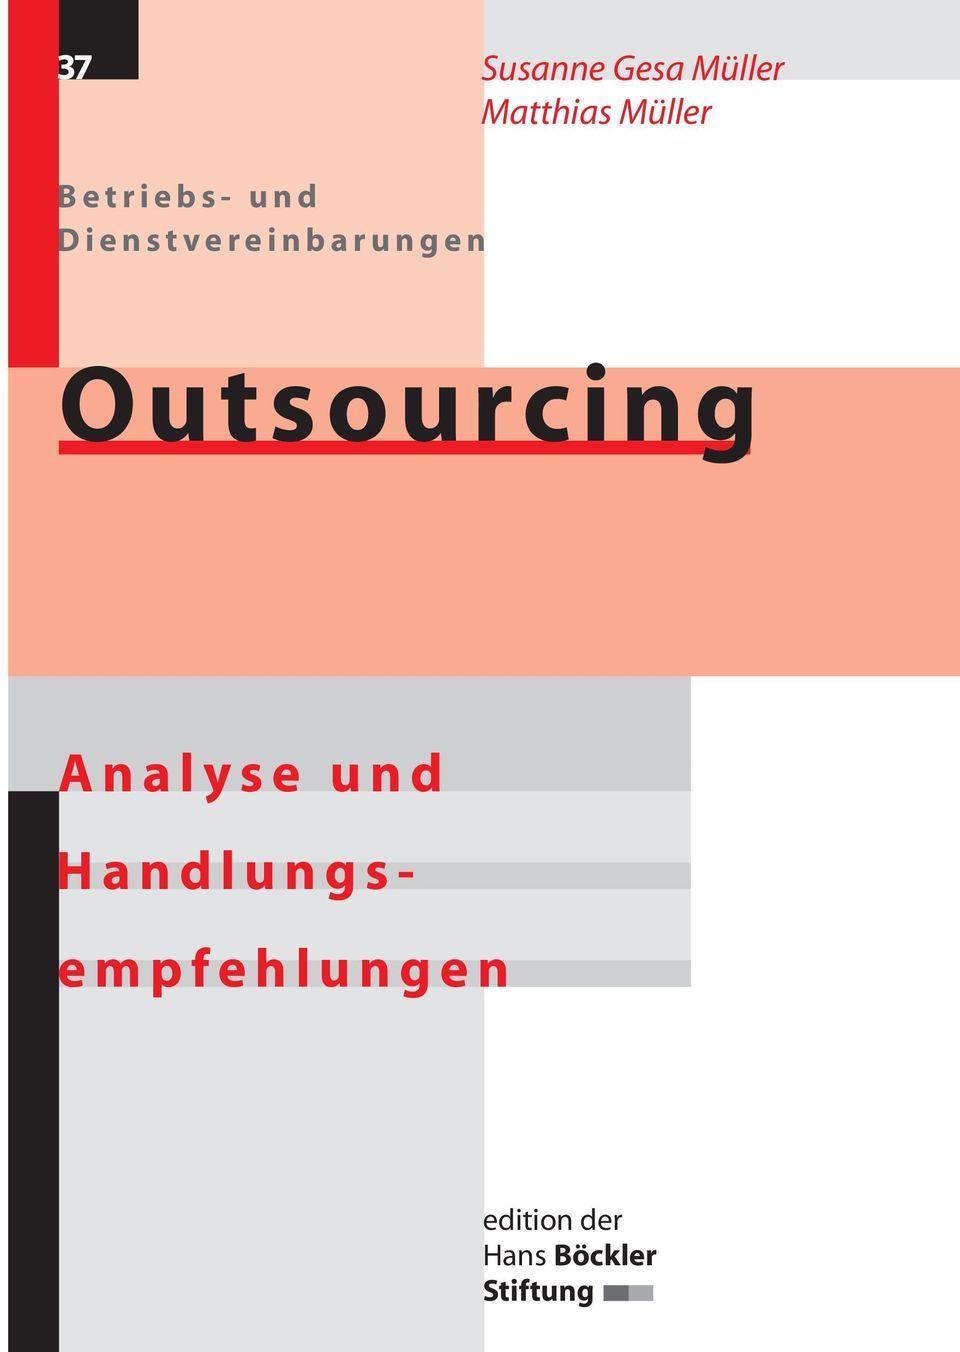 Outsourcing Analyse und